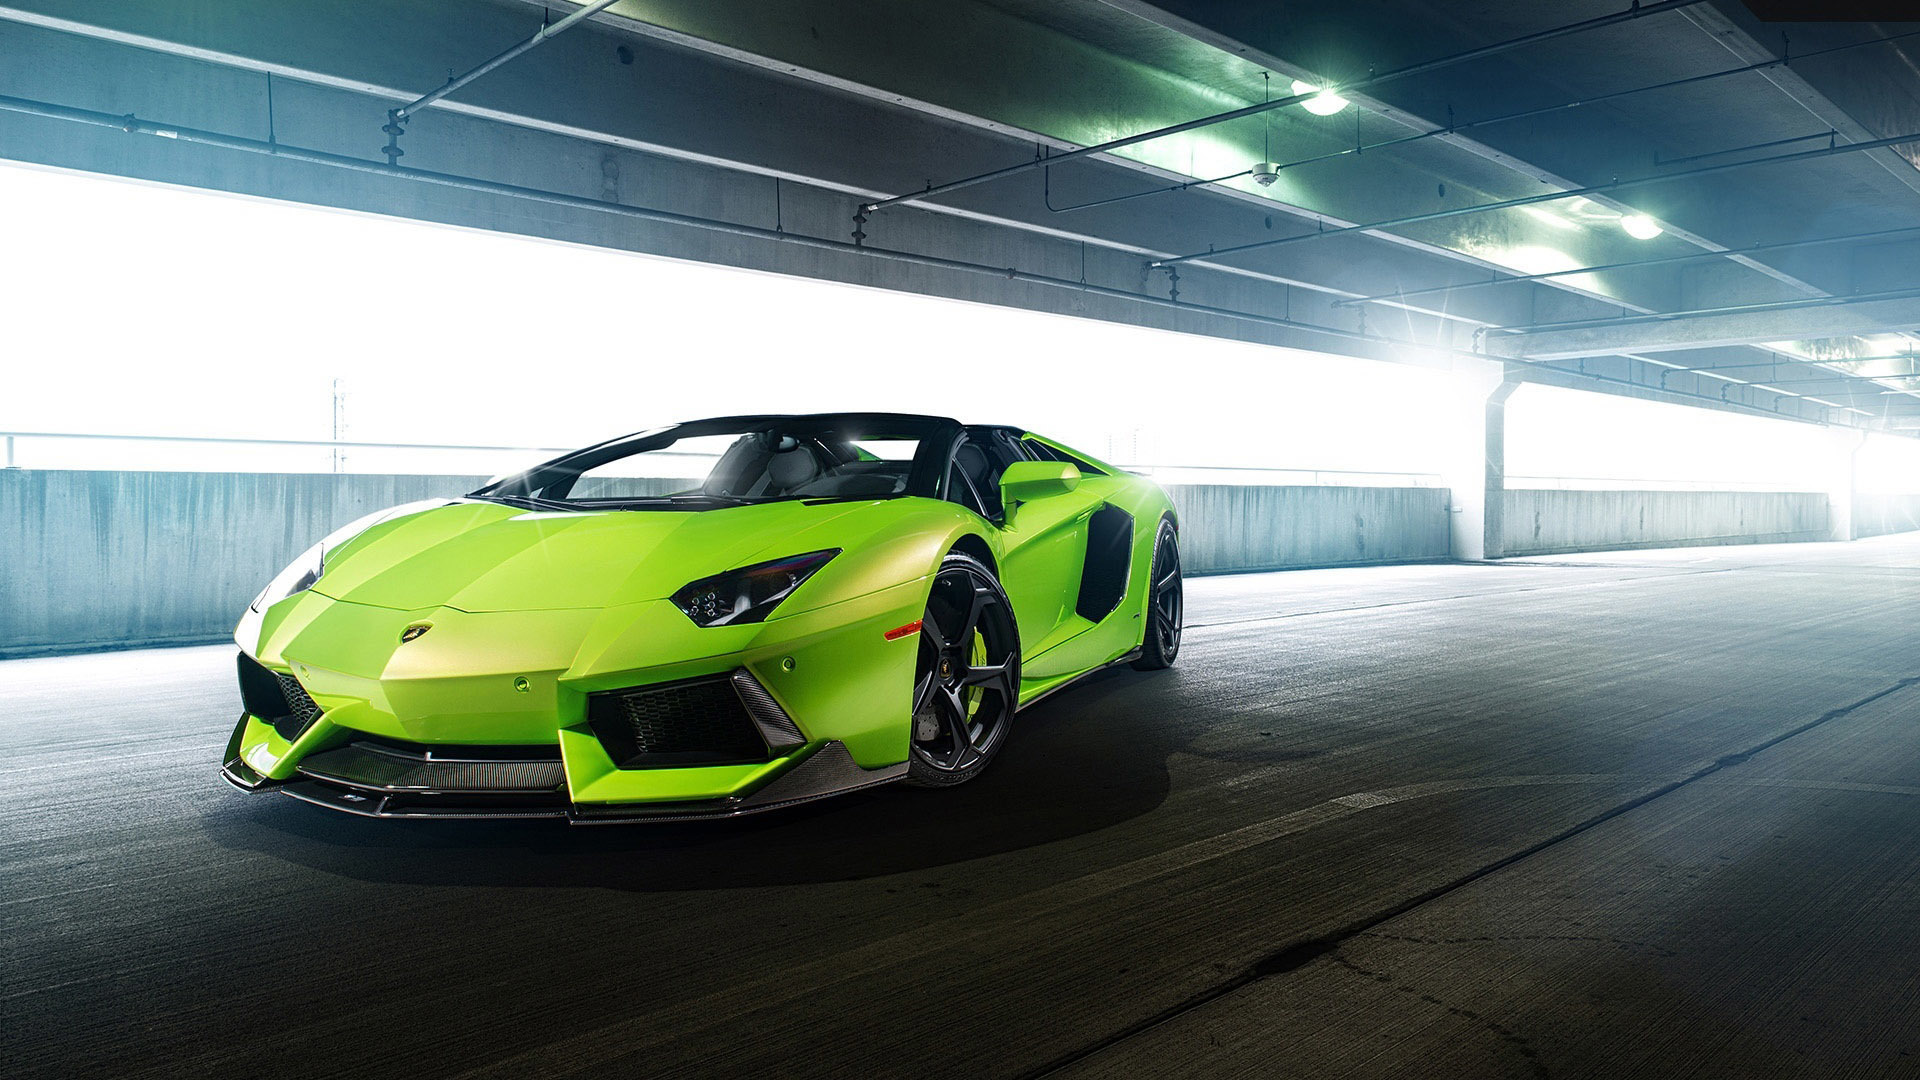 Lamborghini Aventador Wallpapers Images Photos Pictures ...